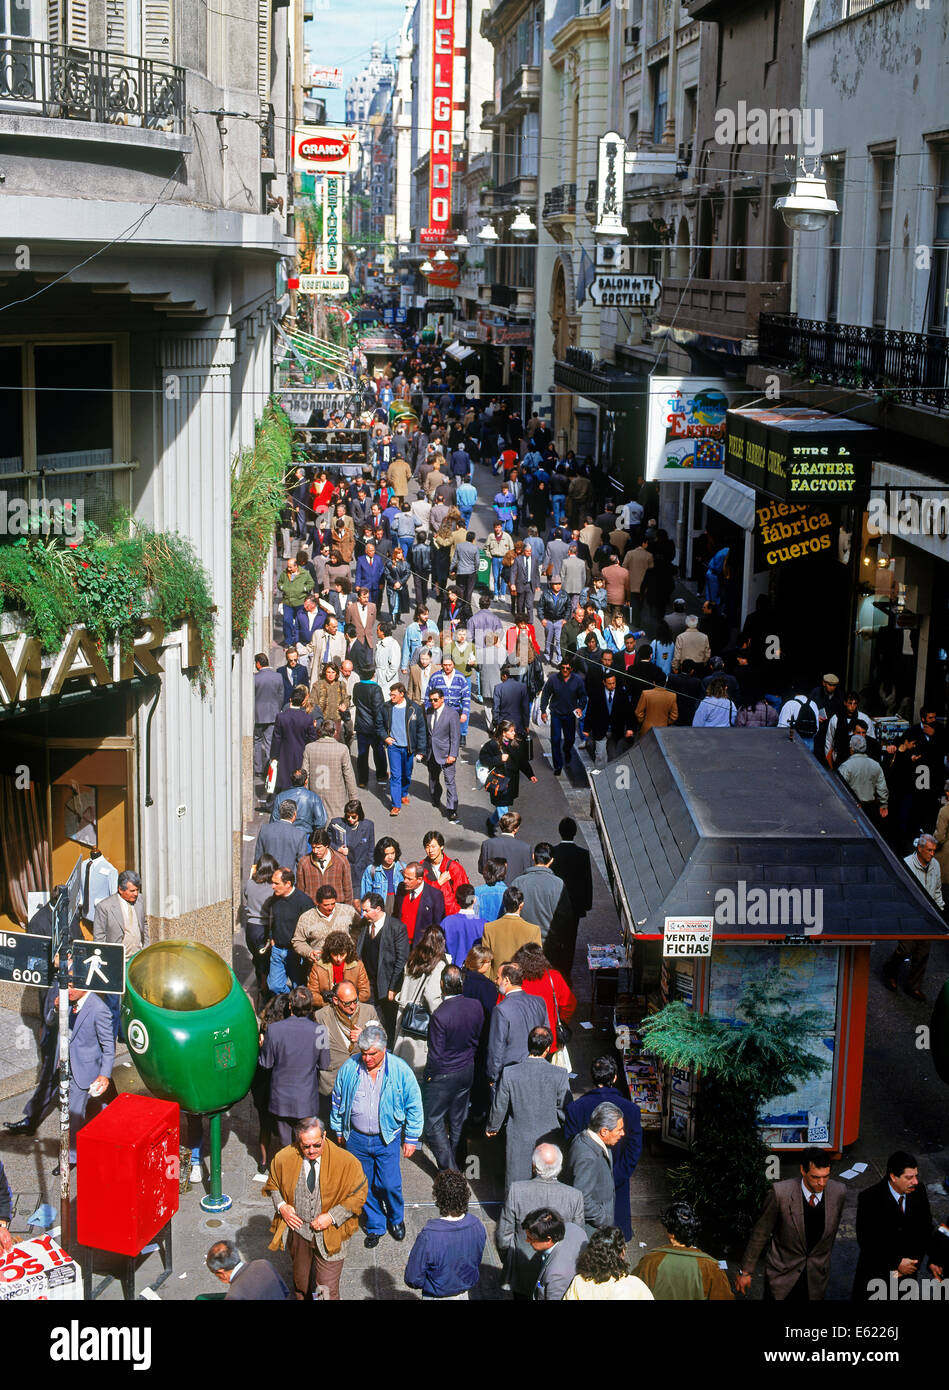 Pedestrians on crowded Calle Florida walking street in central Buenos Aires - Stock Image